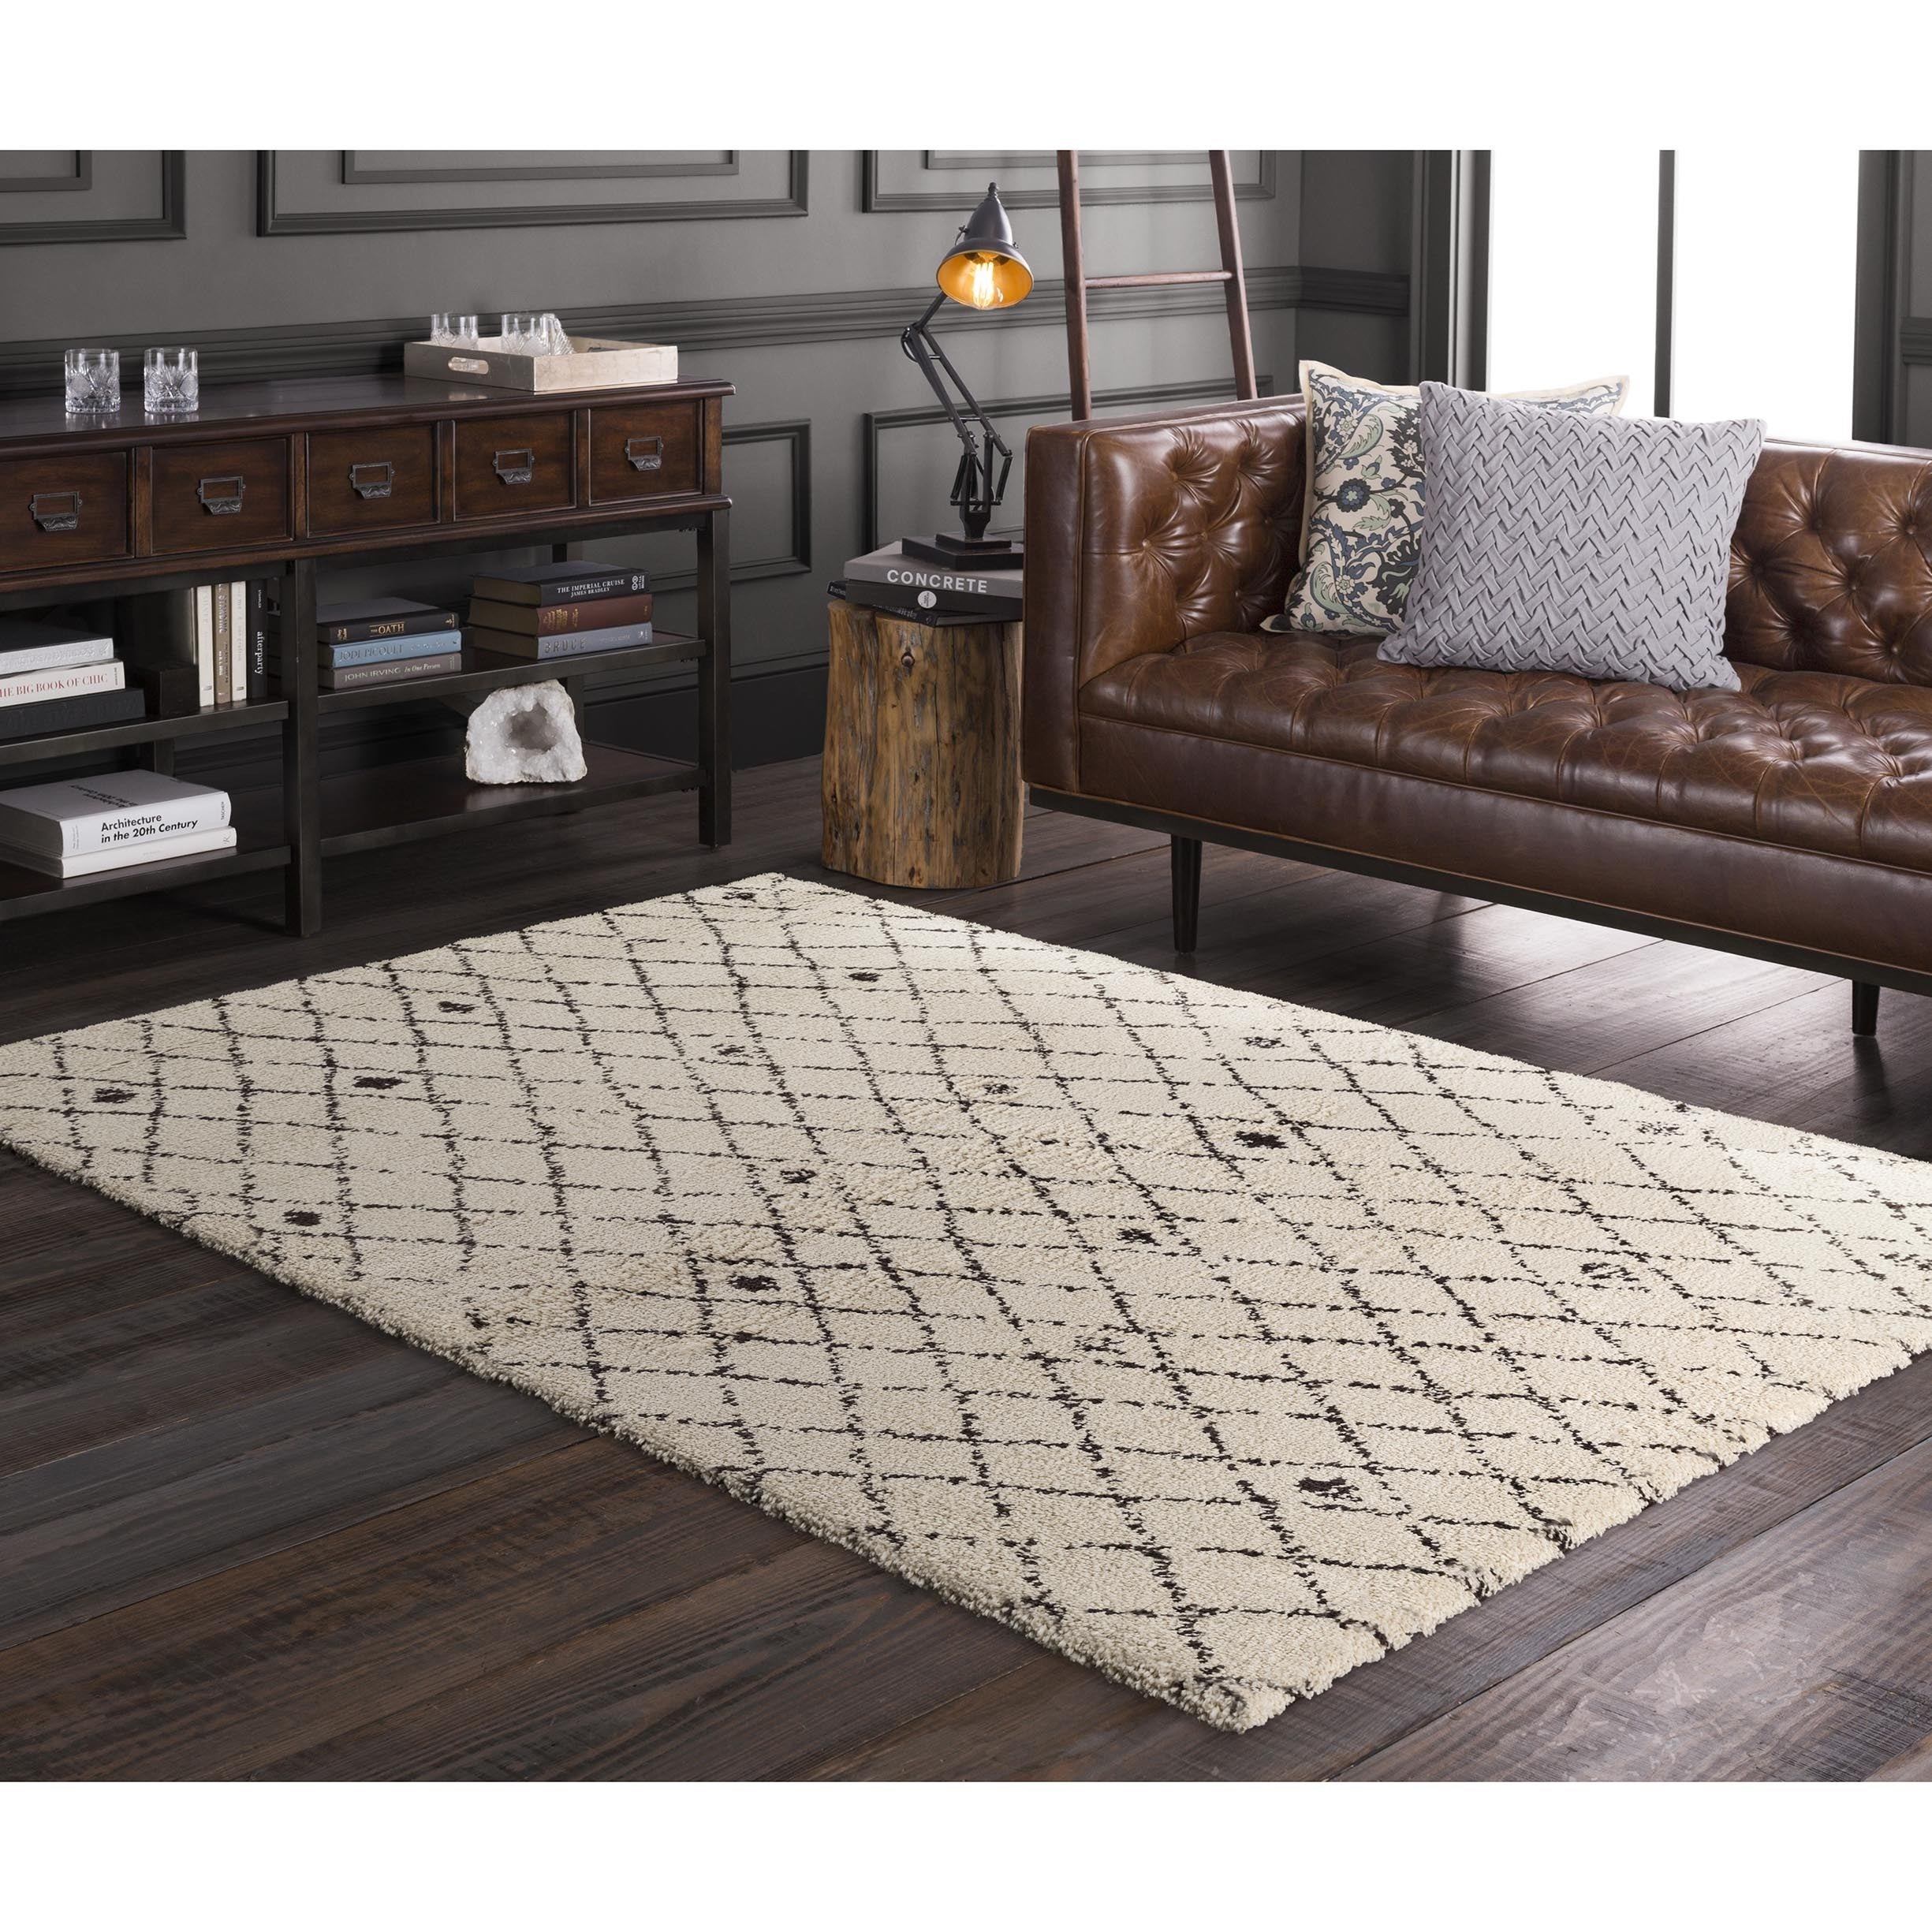 Meticulously Woven Dupont Rug (5'3 x 7'7) (Beige), Size 5...